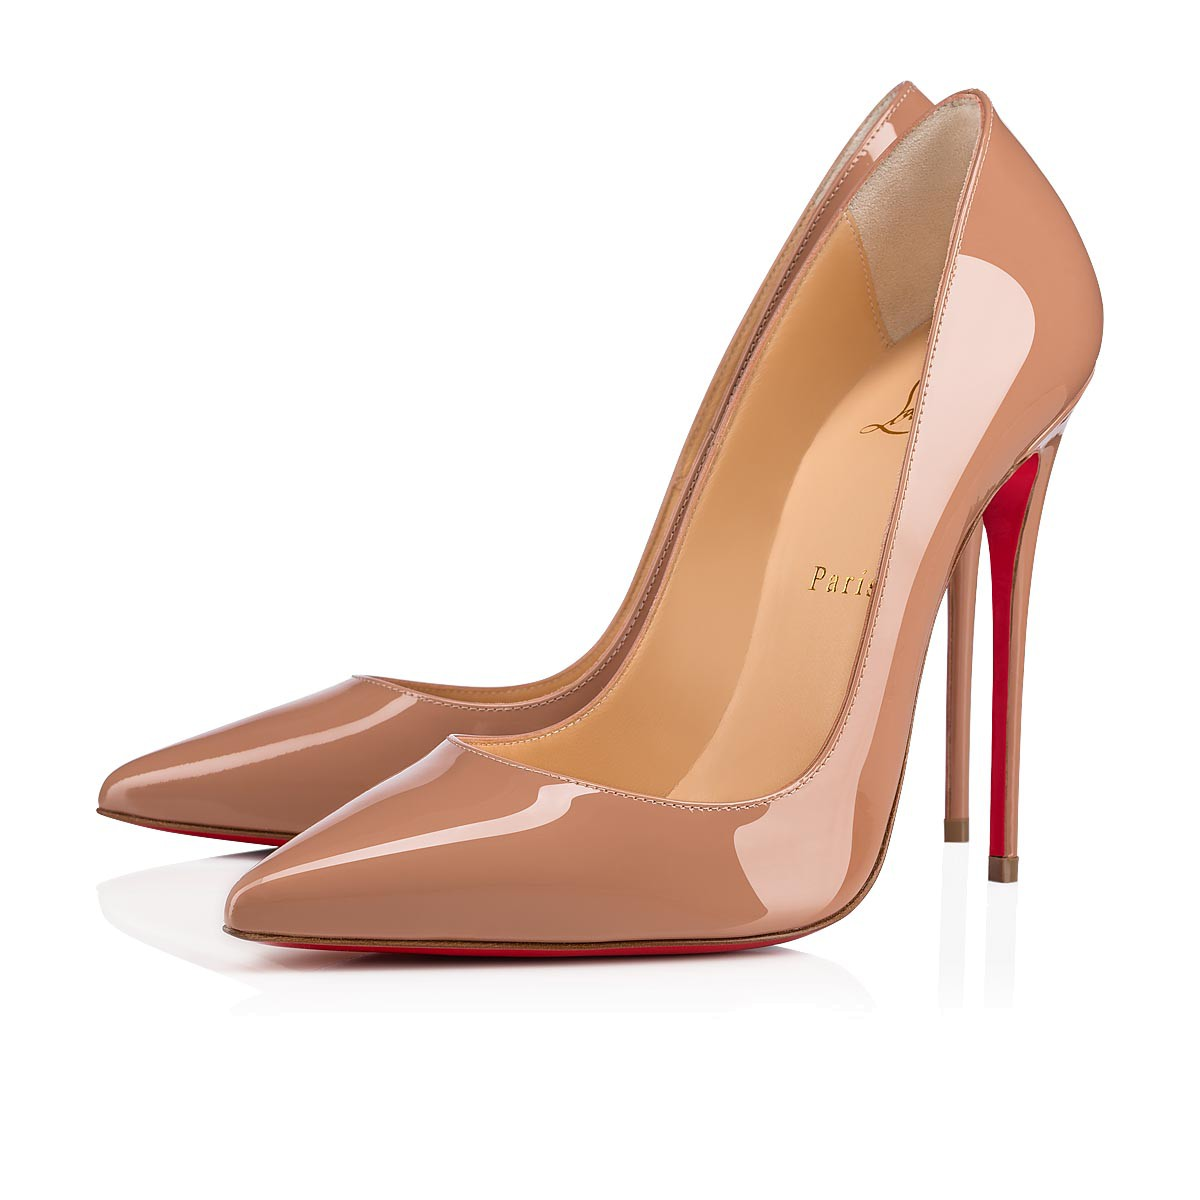 wholesale dealer d85cc fbbf4 So Kate 120 Nude Patent Leather - Women Shoes - Christian Louboutin